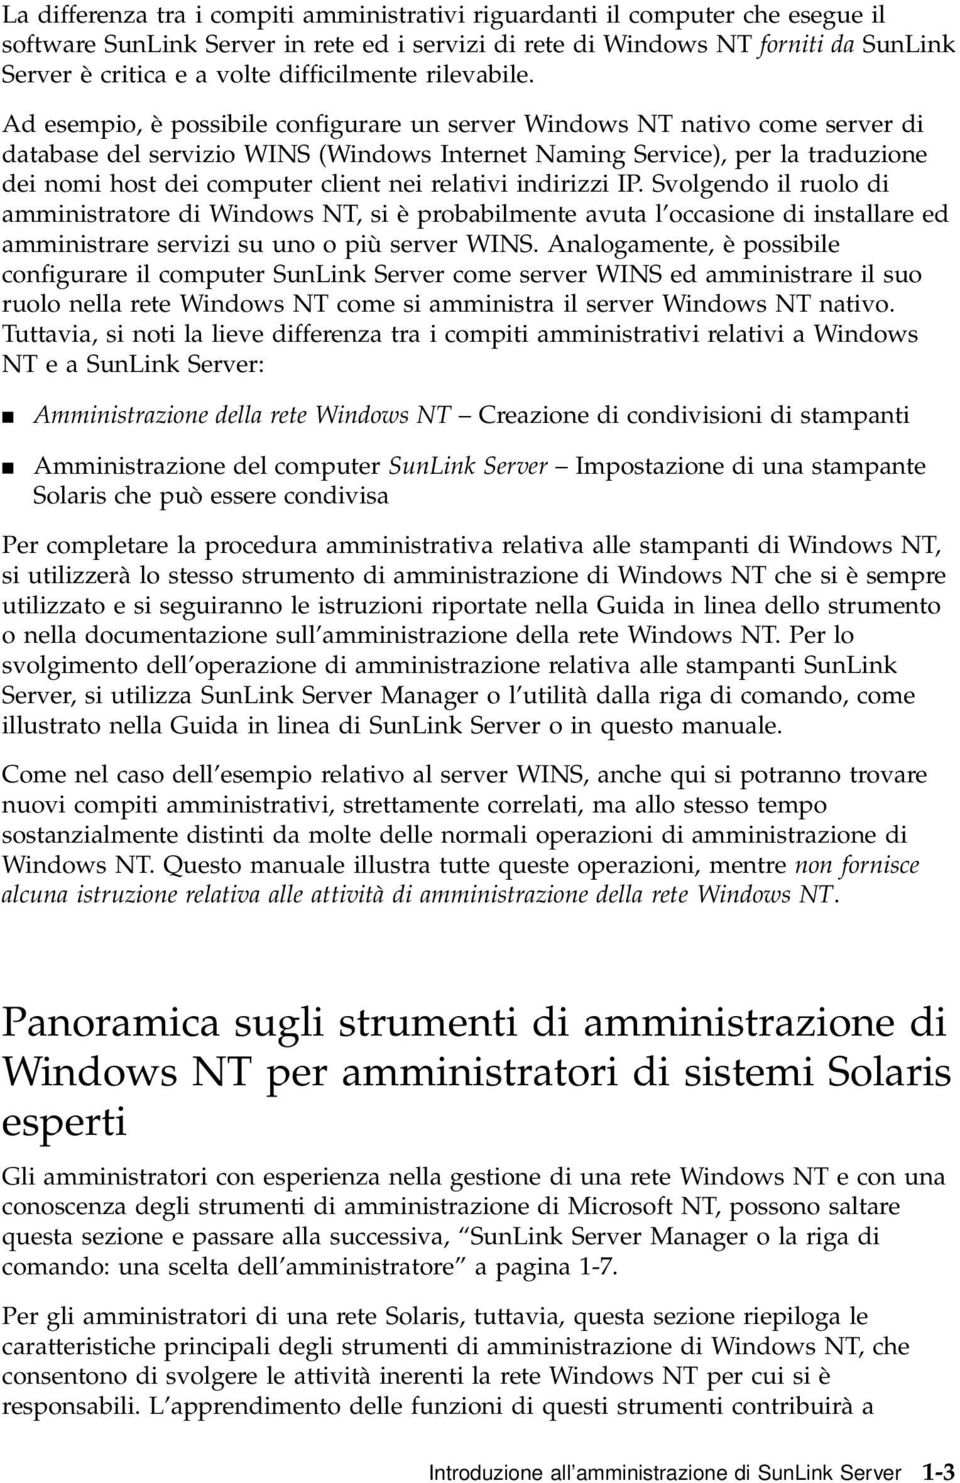 Ad esempio, è possibile configurare un server Windows NT nativo come server di database del servizio WINS (Windows Internet Naming Service), per la traduzione dei nomi host dei computer client nei